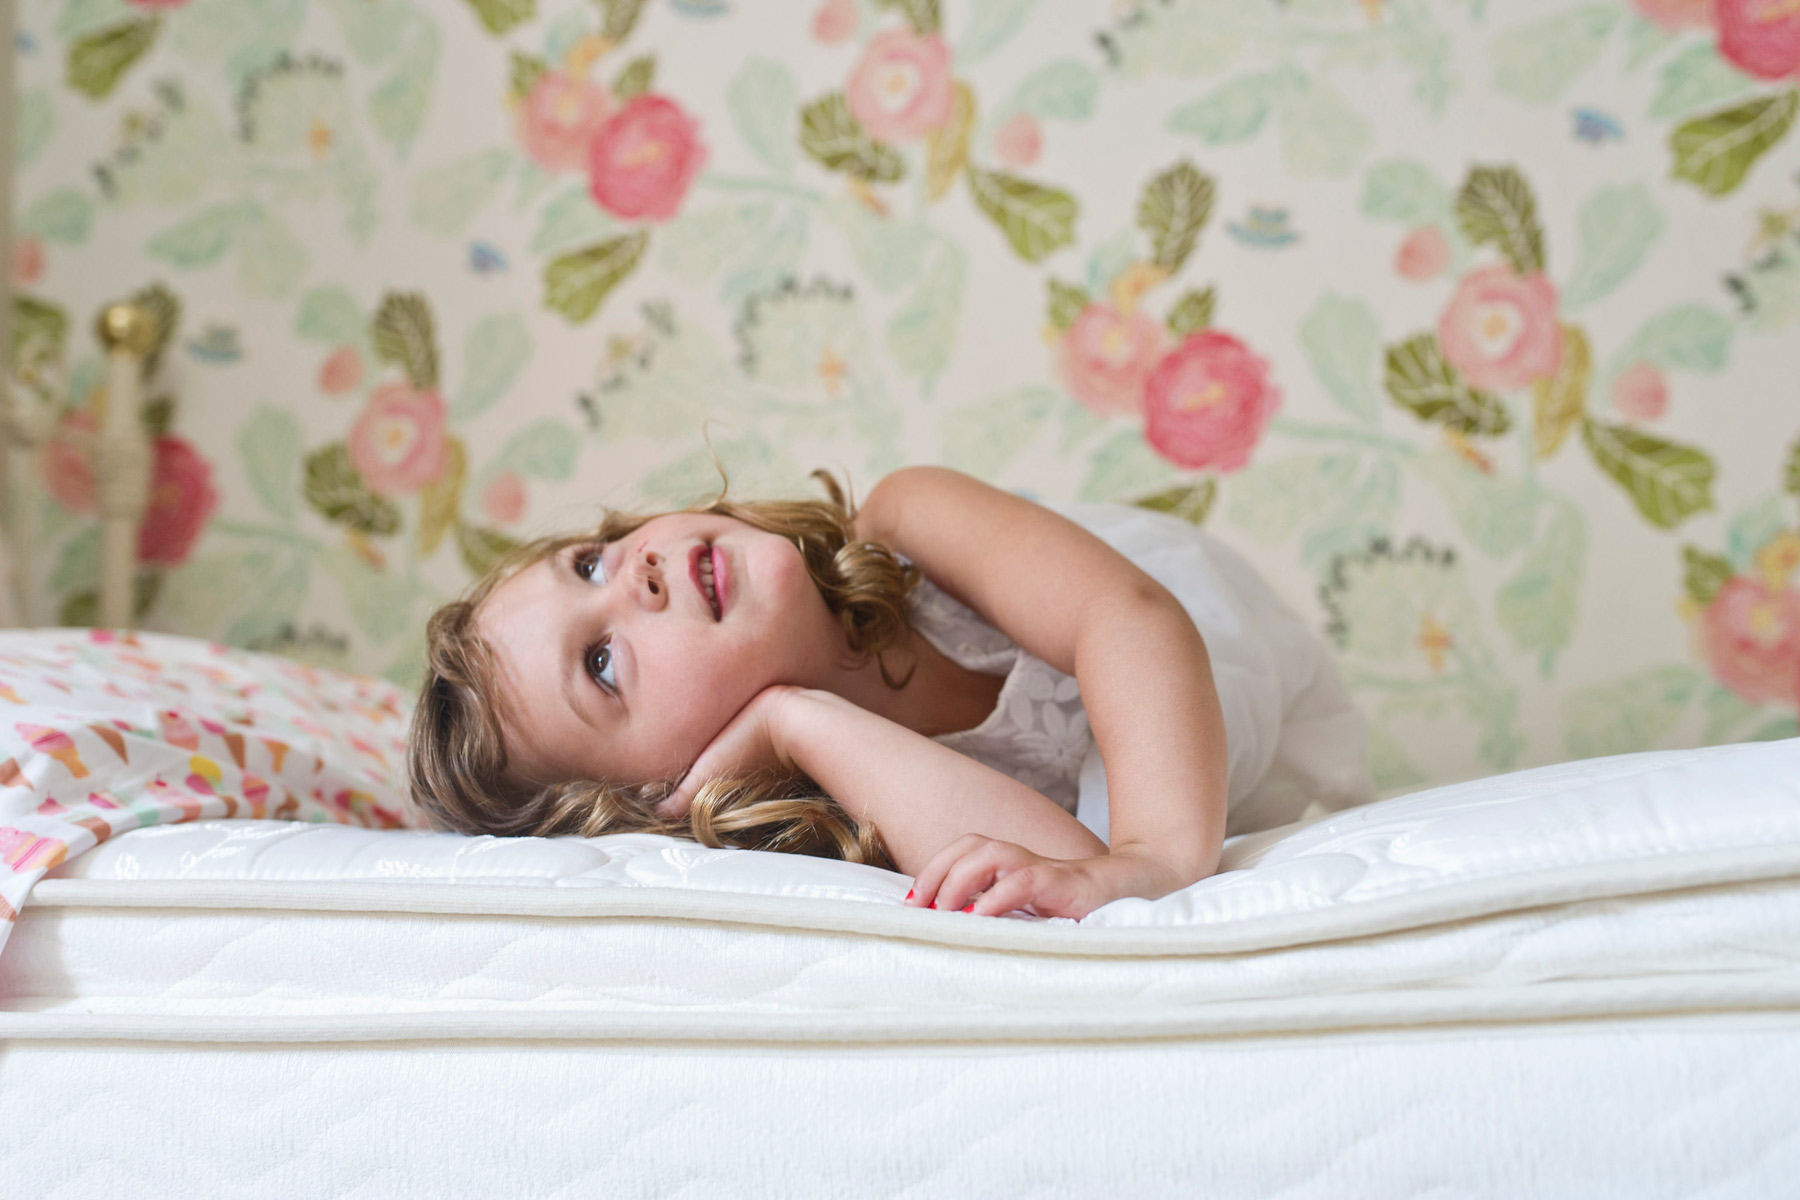 3 year old lays on bed daydreaming and looking at ceiling